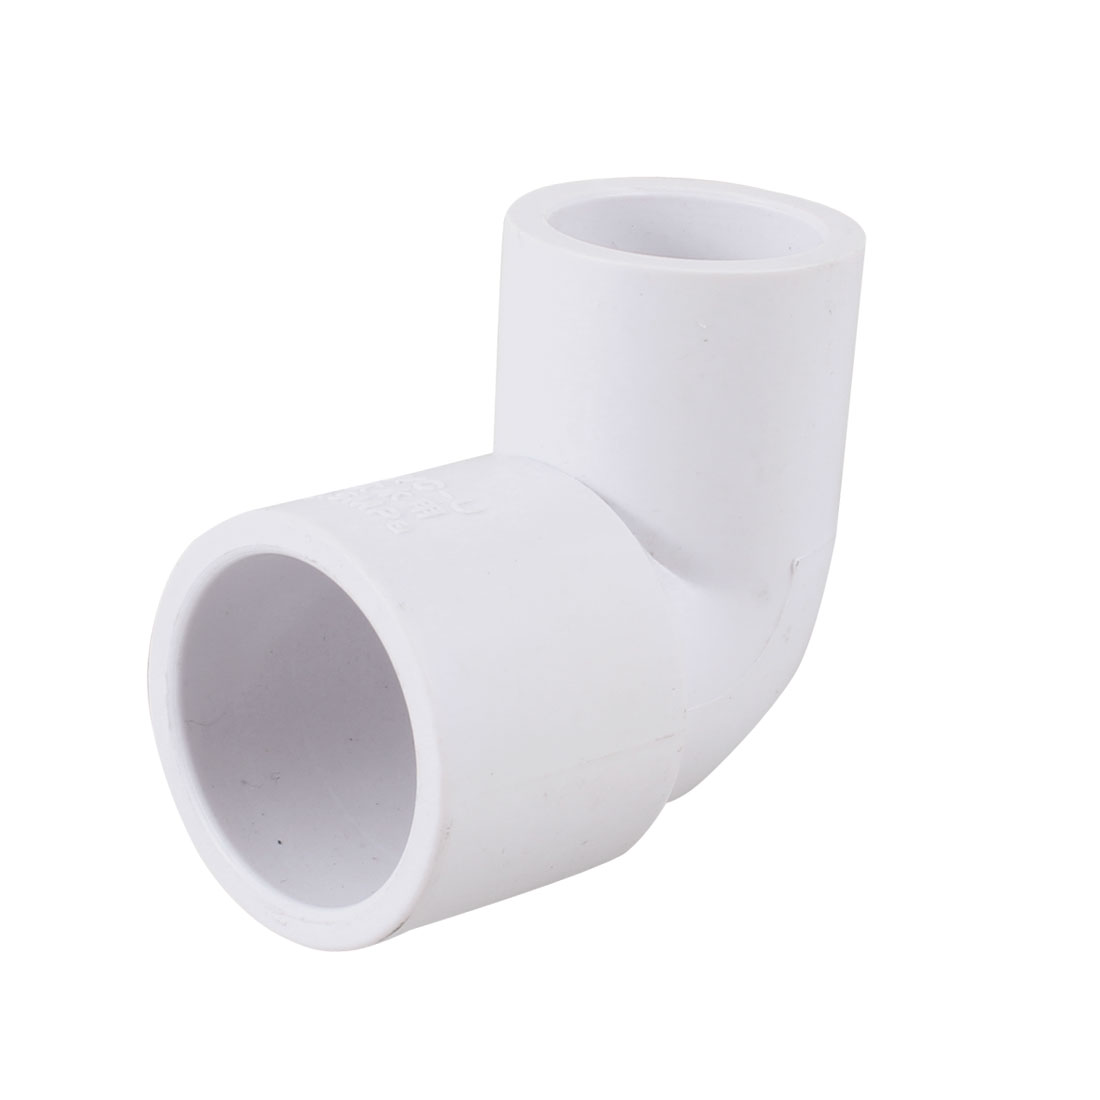 White PVC-U 20mm to 25mm Water Pipe Right Angle Elbow Connector Adapter